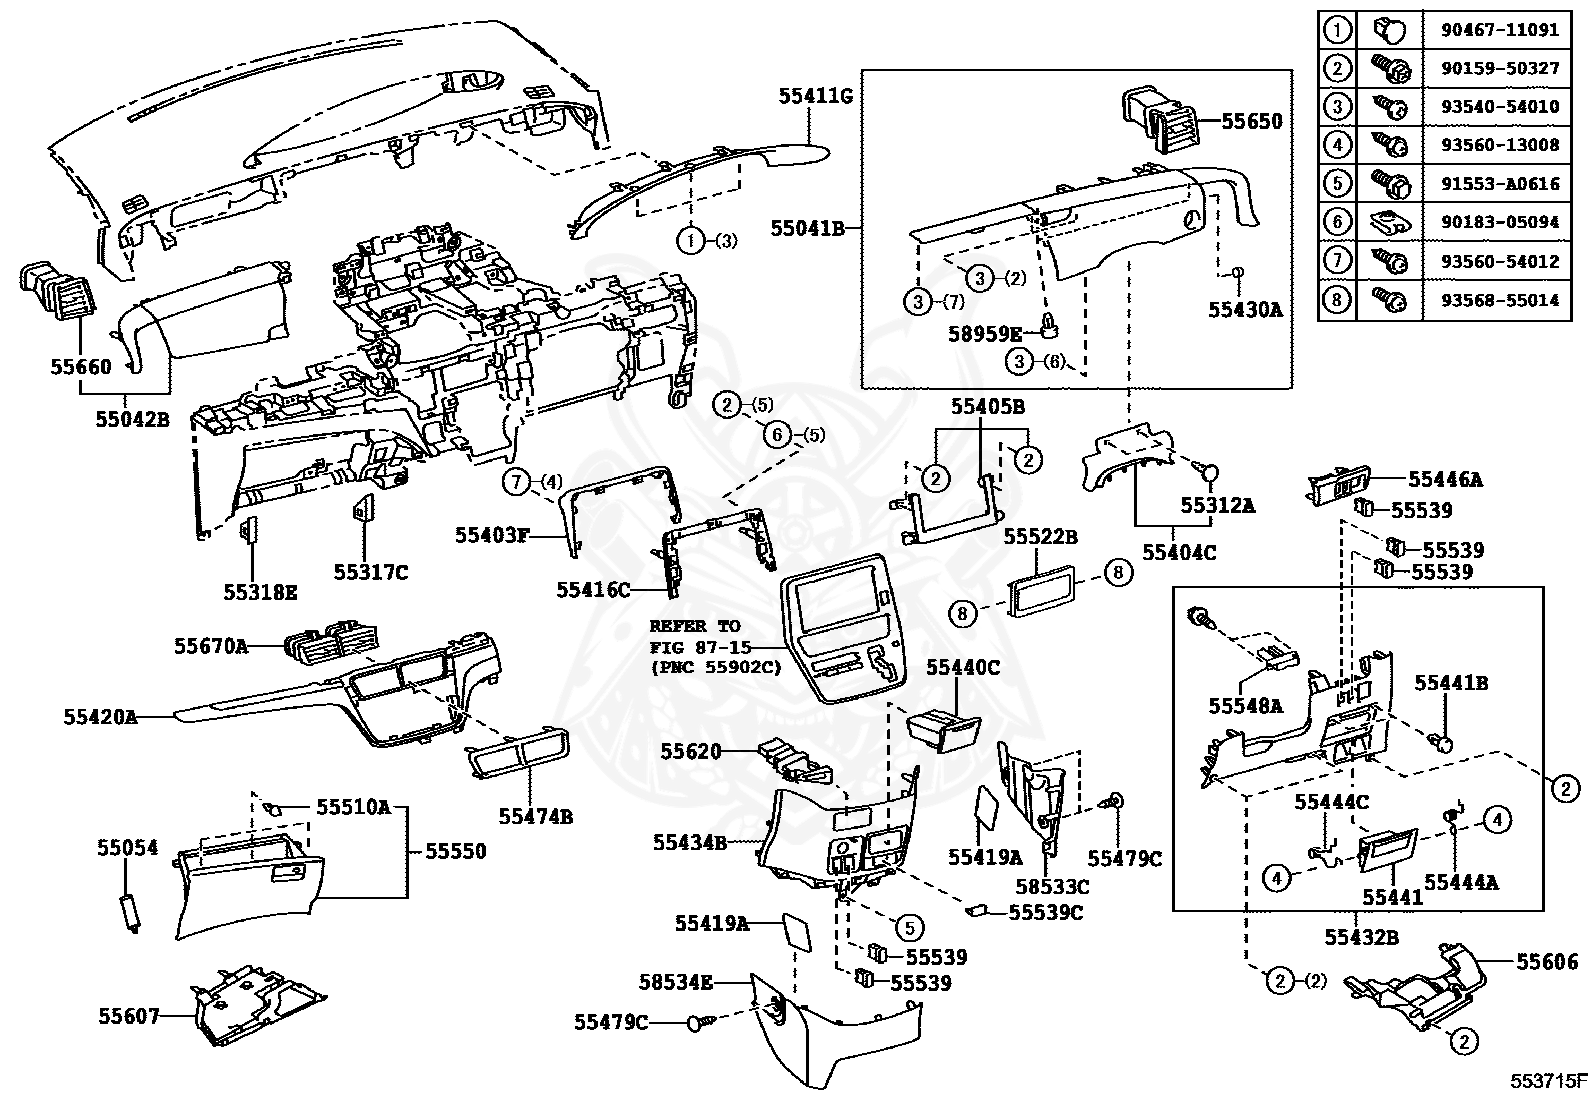 Wiring Diagram 1994 Toyota Pickup Water Pump Toyota Previa 1986 Toyota